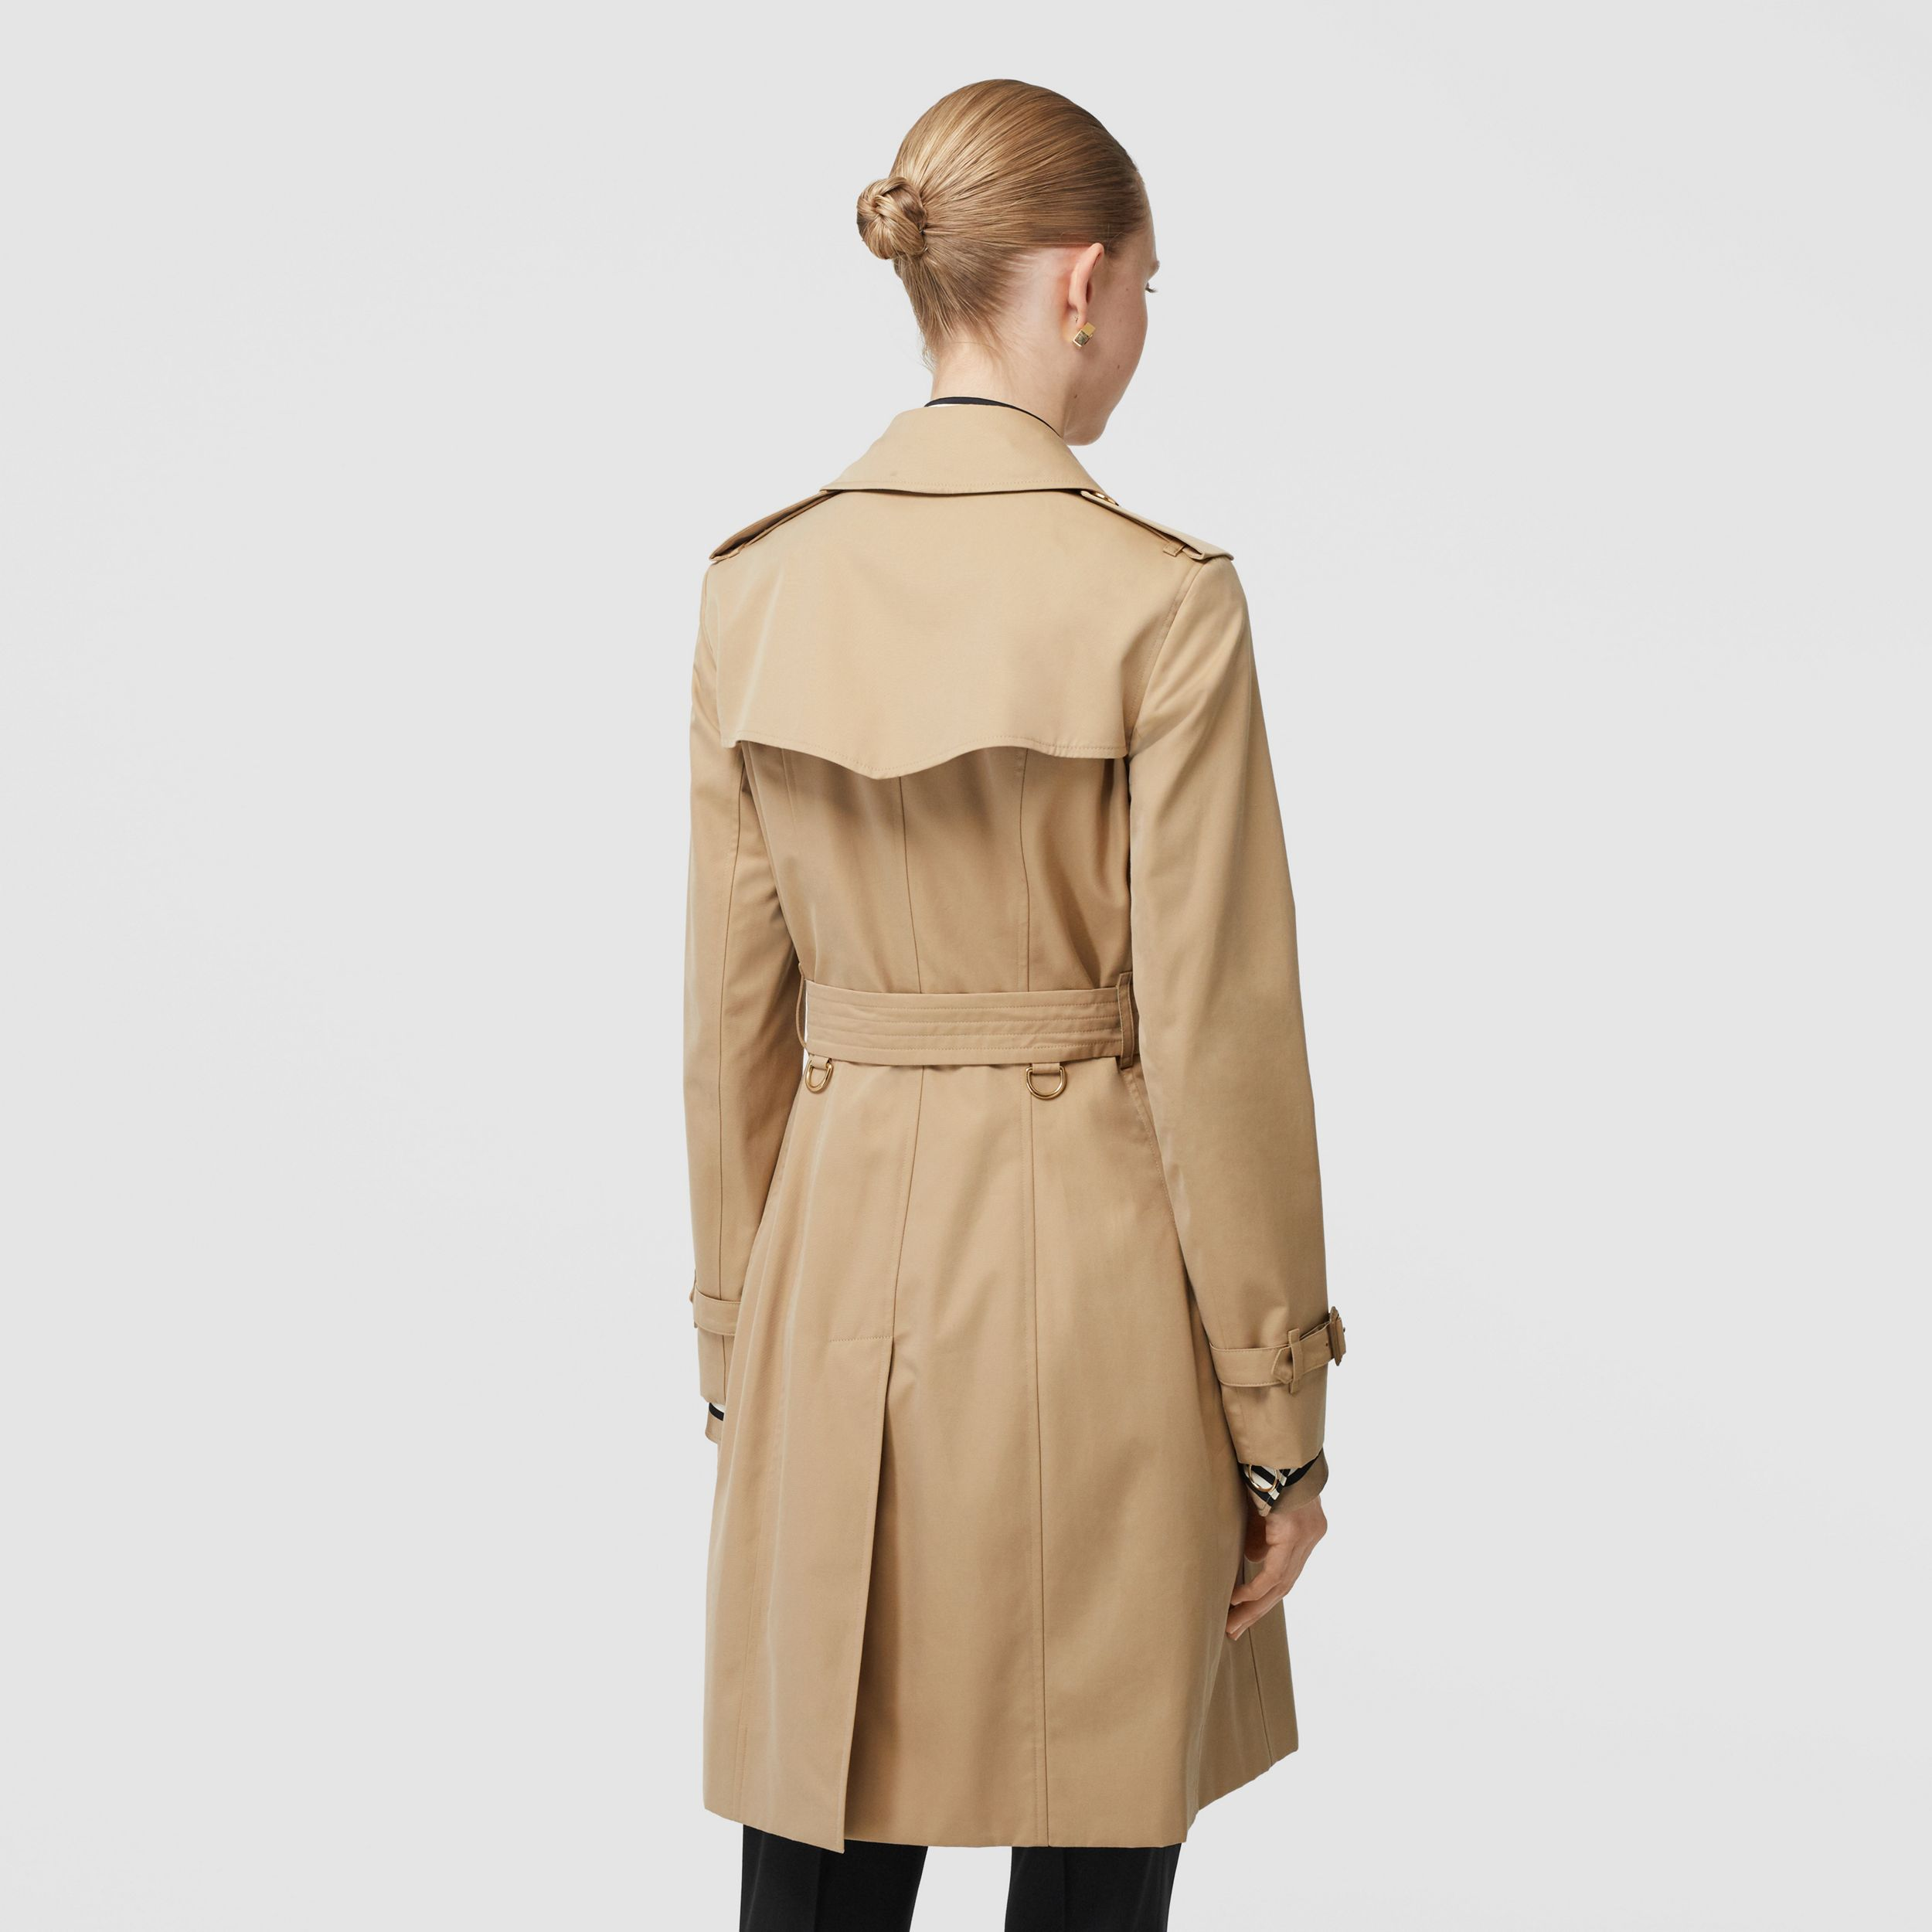 Button Detail Cotton Gabardine Trench Coat in Honey - Women | Burberry - 3